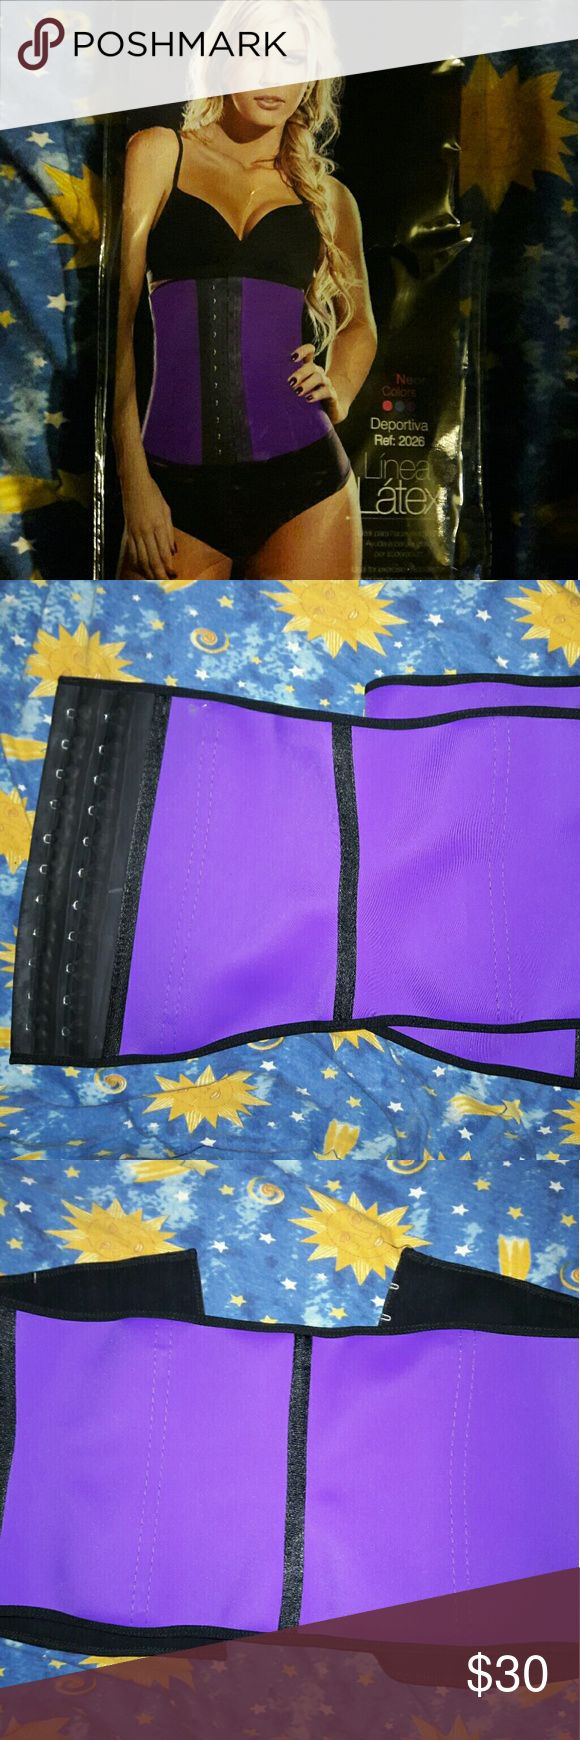 2 for $30 Ann Cherry Waist Cincher/Trainer Not the cheap quality I could not even get on my waist lol I am too thick they are Purple tried on once and comes  in original packaging no wear at all still look brand new! Intimates & Sleepwear Shapewear